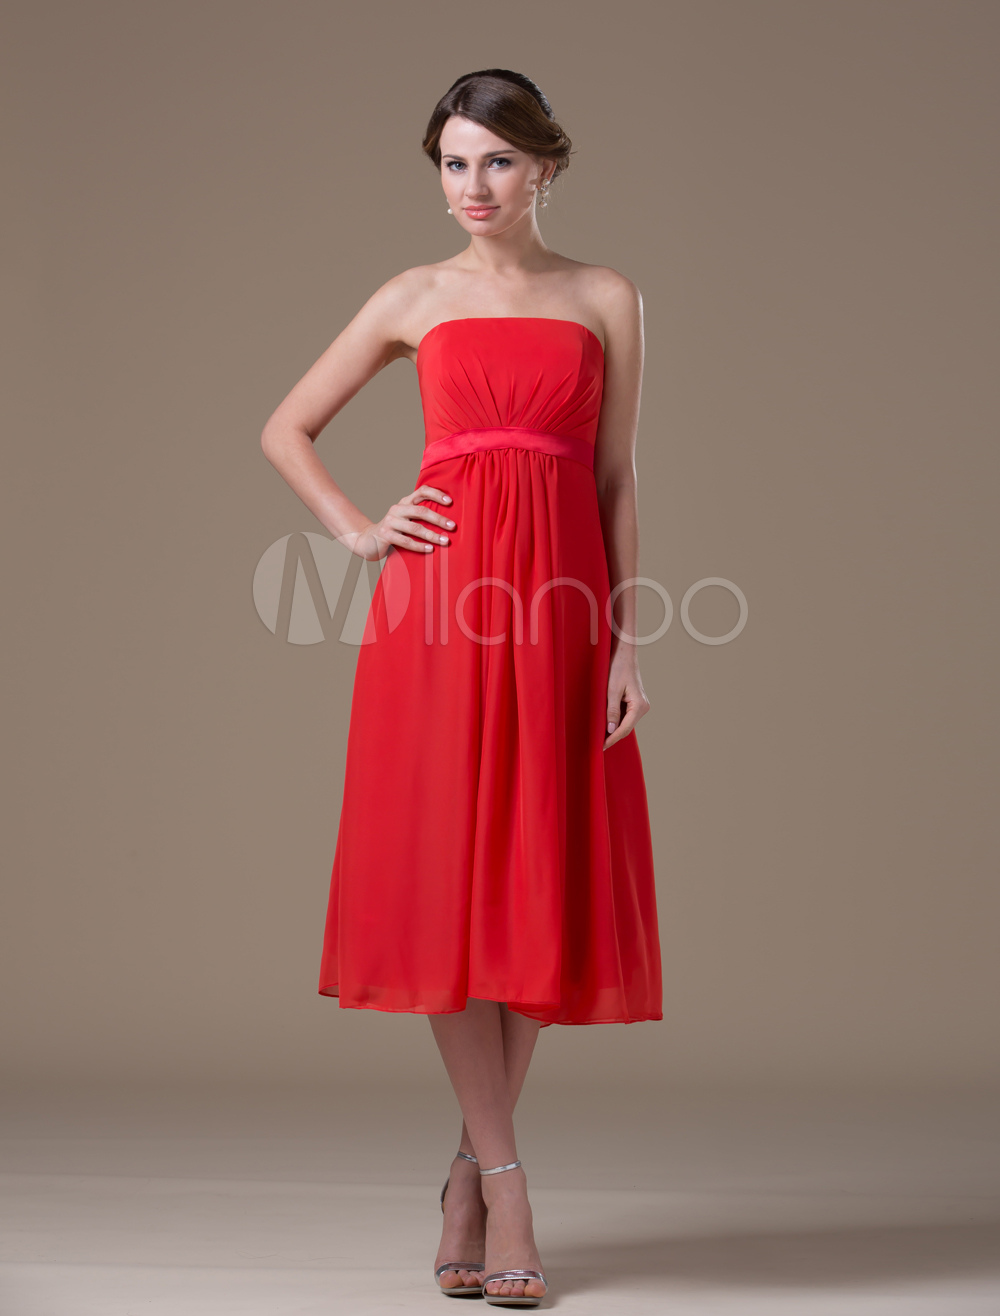 Strapless Red Elastic Satin Chiffon Tea Length Maternity Bridesmaid Dress